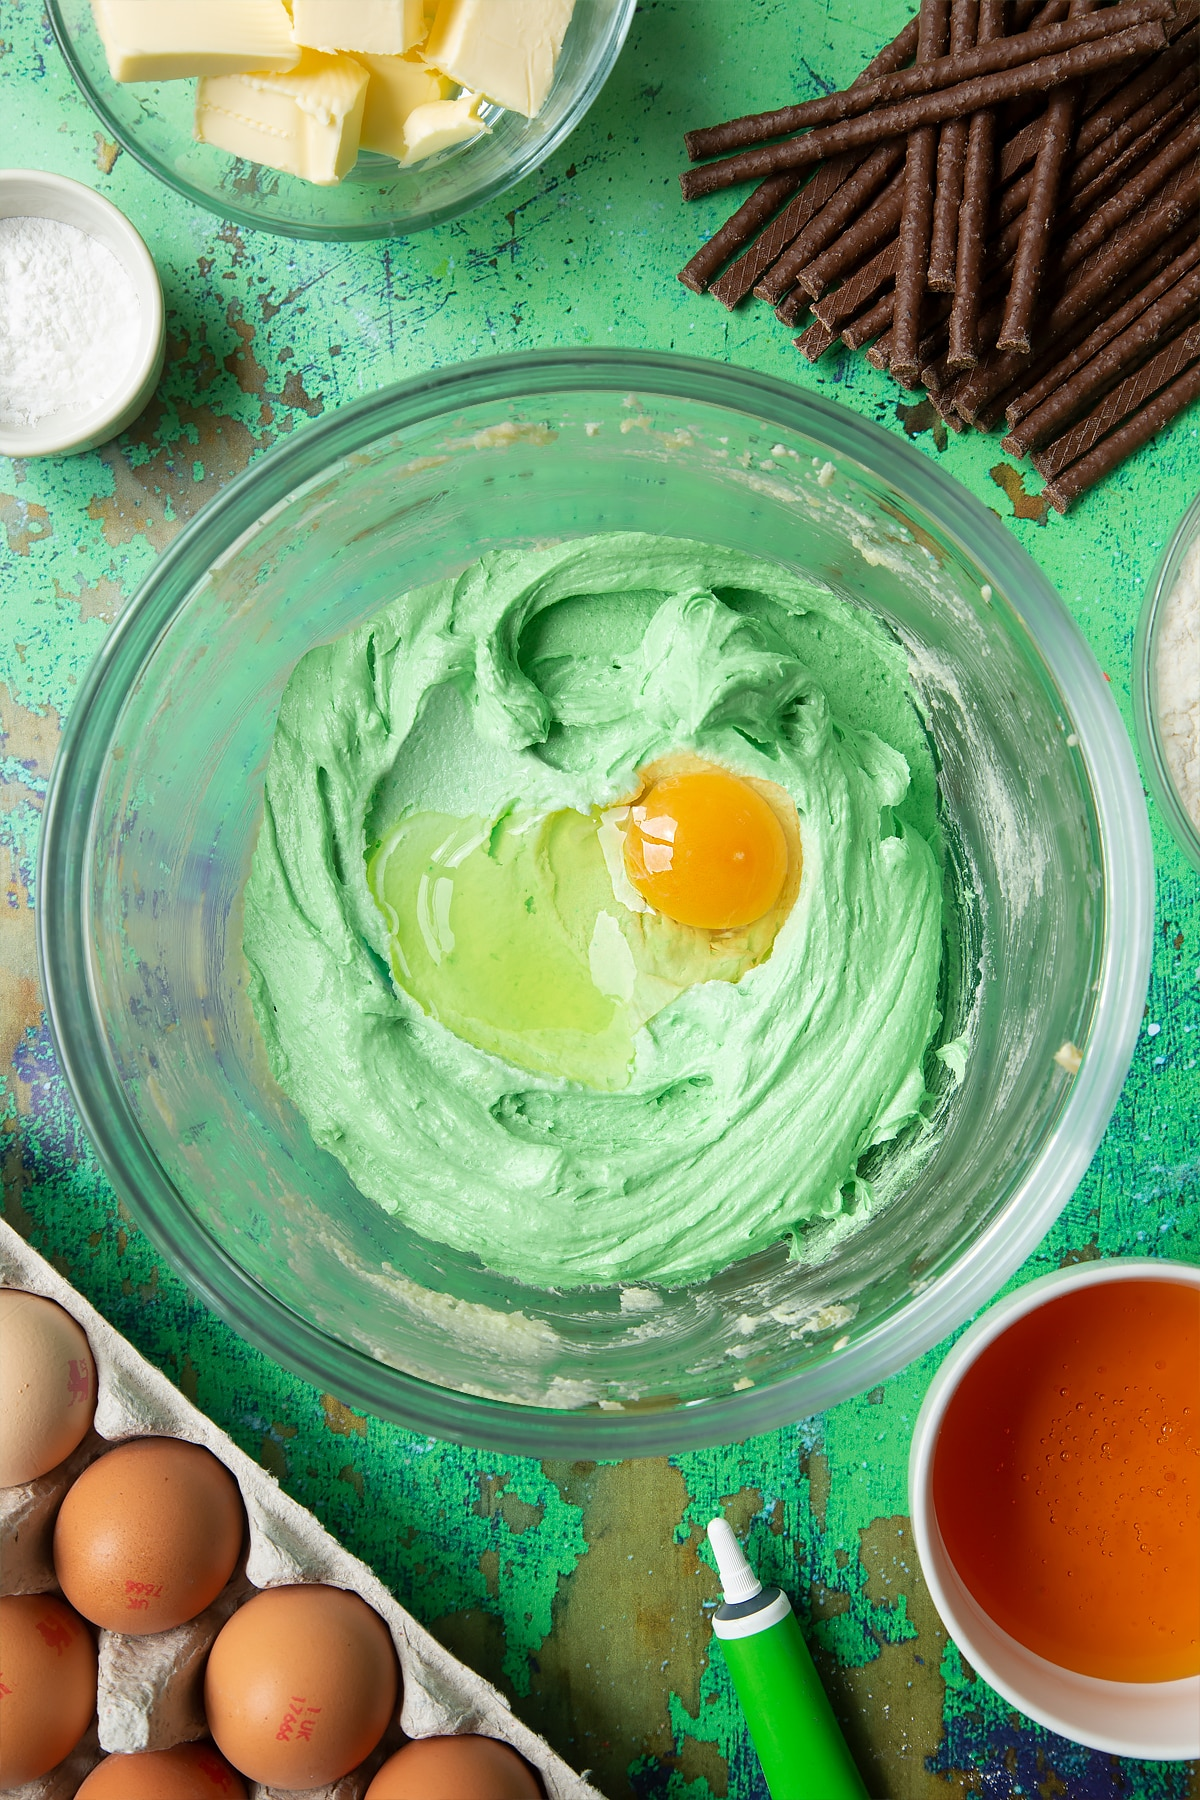 Creamed butter, sugar and green food colouring topped with an egg in a mixing bowl. Ingredients to make Matchmaker cookies surround the bowl.